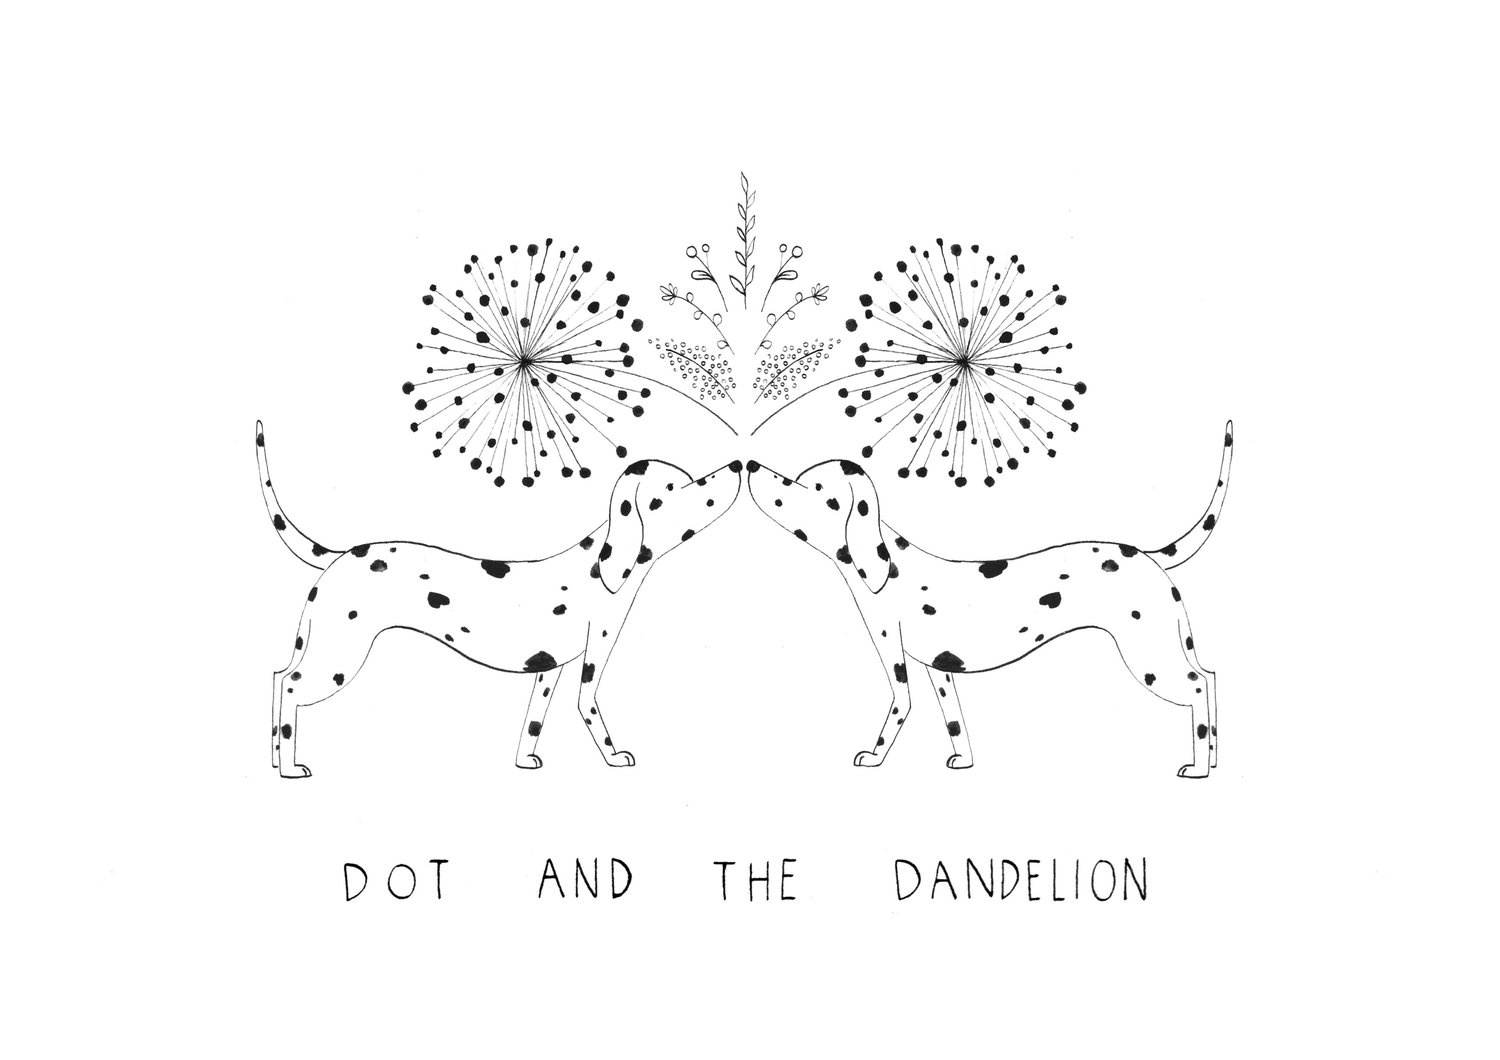 Dot and the Dandelion